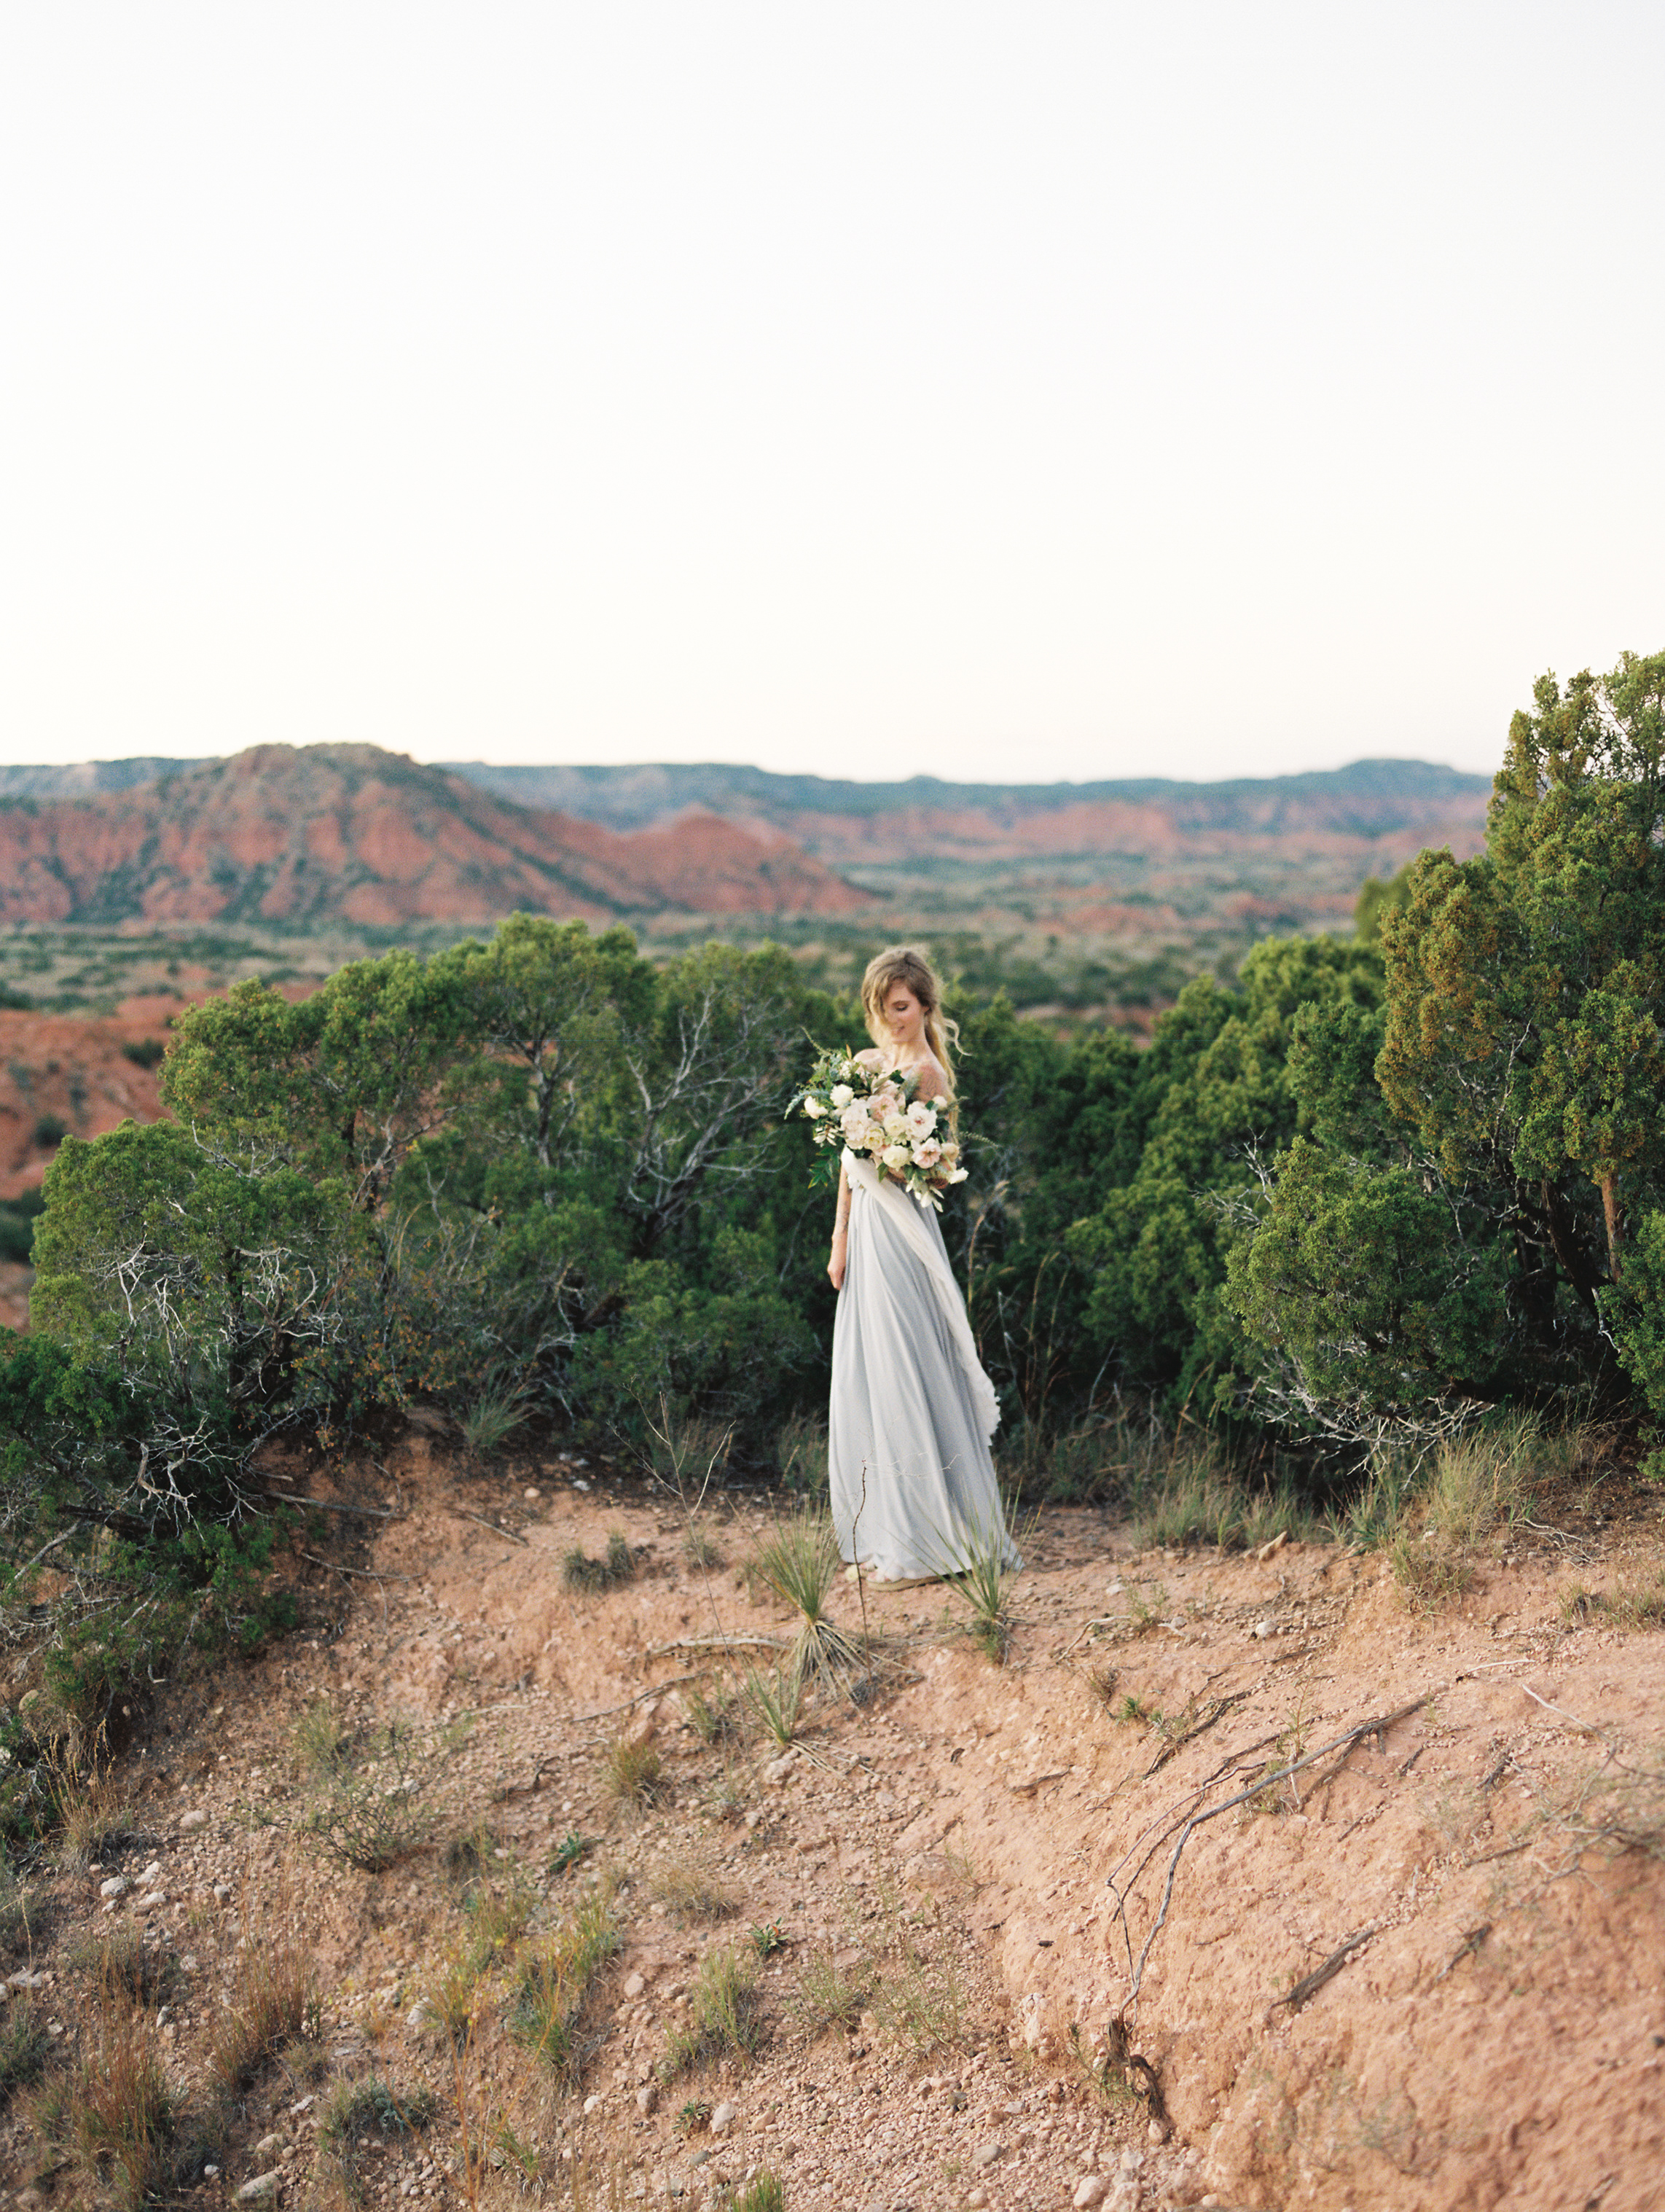 Katie-Rivera-Photography-Caprock-Canyon-Styled-Shoot-Candelaria-Designs-031.jpg